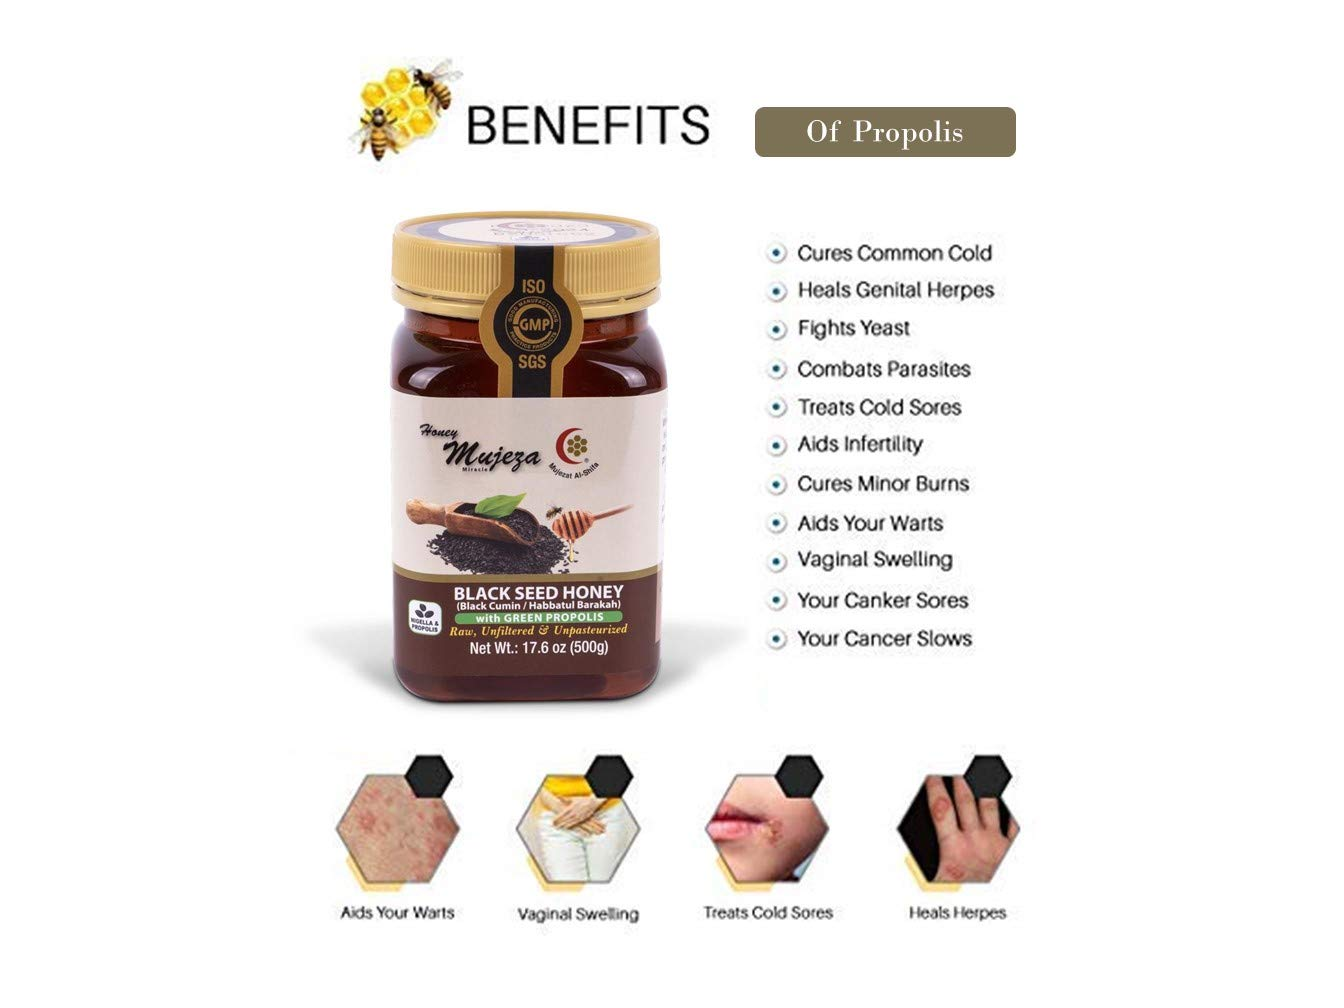 Mujeza Black Seed Honey with Green Propolis - Kosher - Not mixed with oil or powder - Gluten Free - Non GMO - Organic Honey - Immune Booster - 100% Natural Raw Honey (500g /17.6oz)